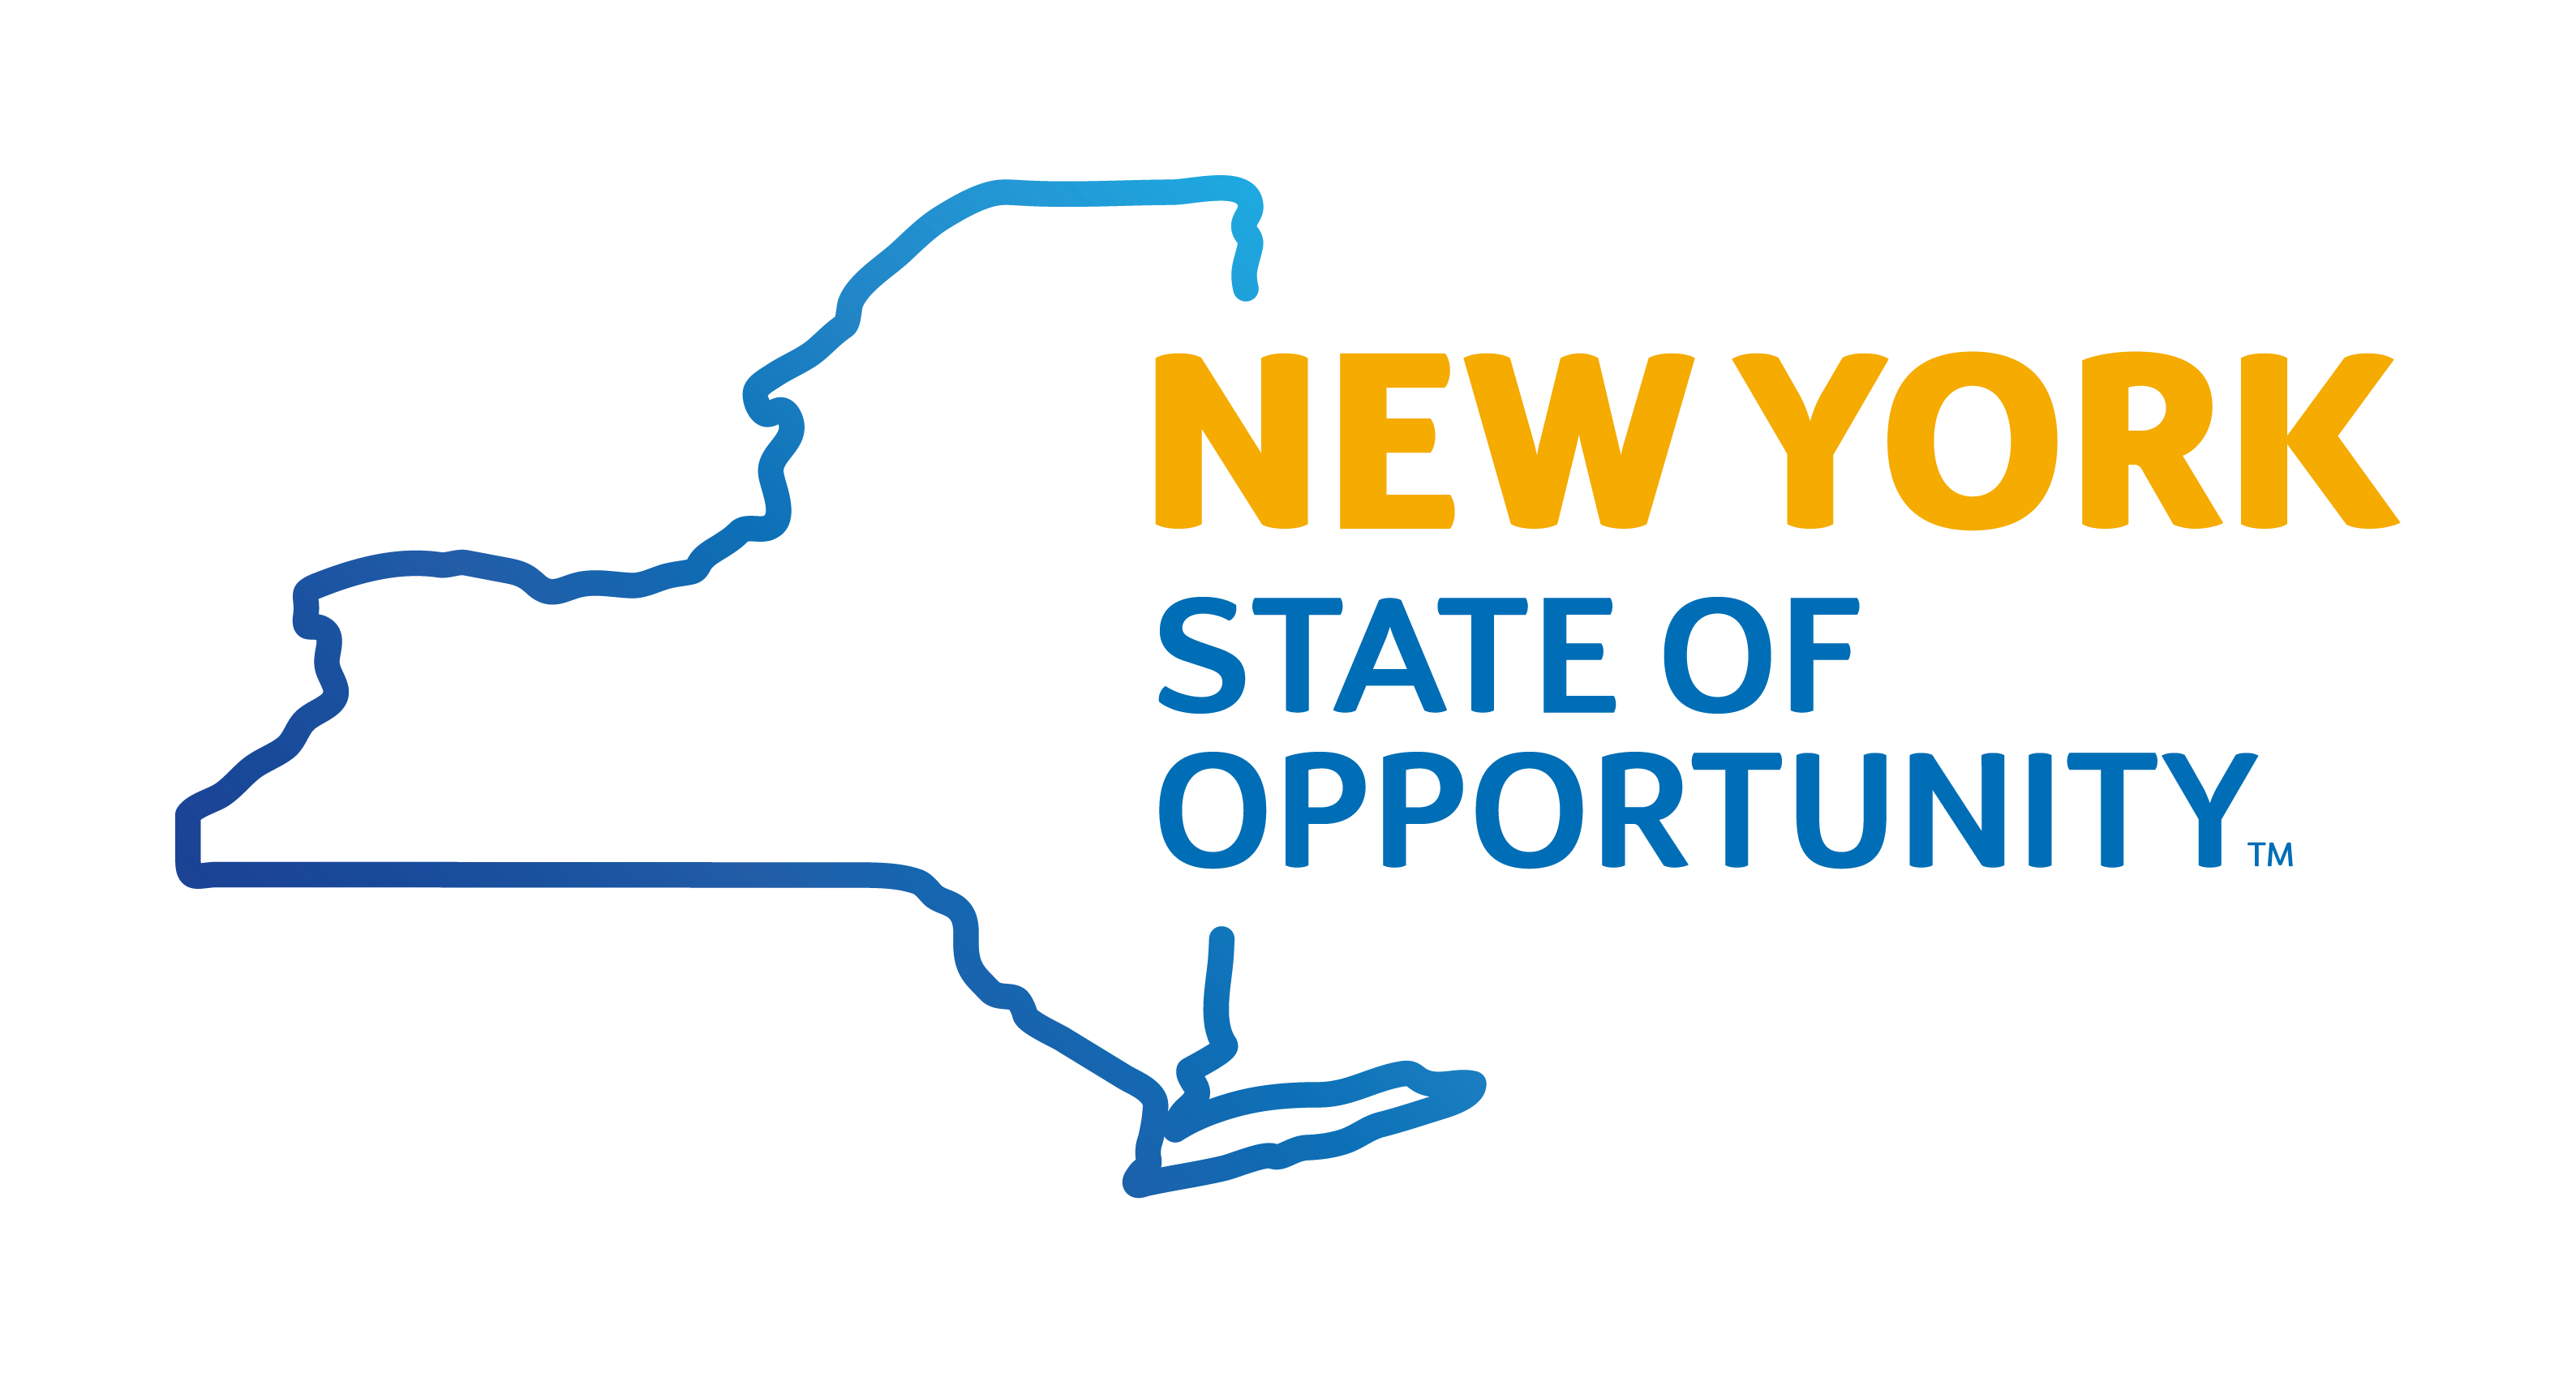 New york png state. Commission on national and